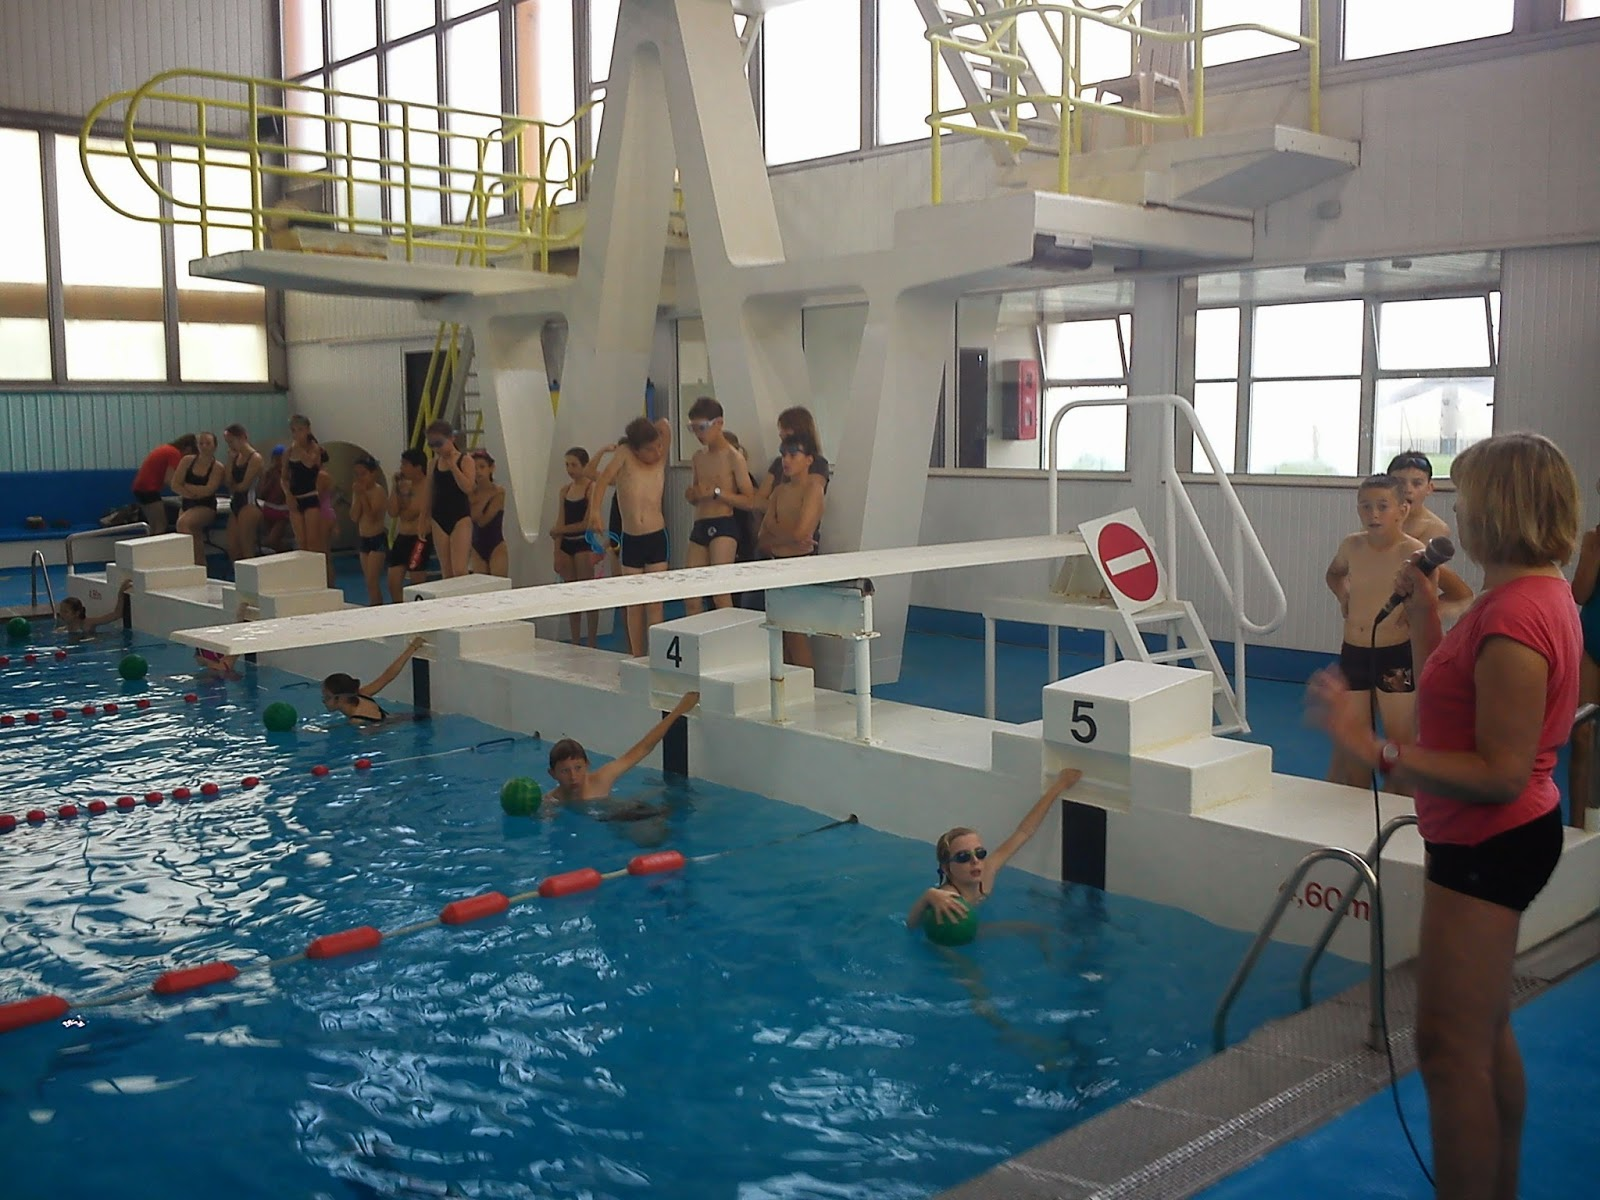 Bienvenue au college jean moulin natation rencontre for Piscine 6eme